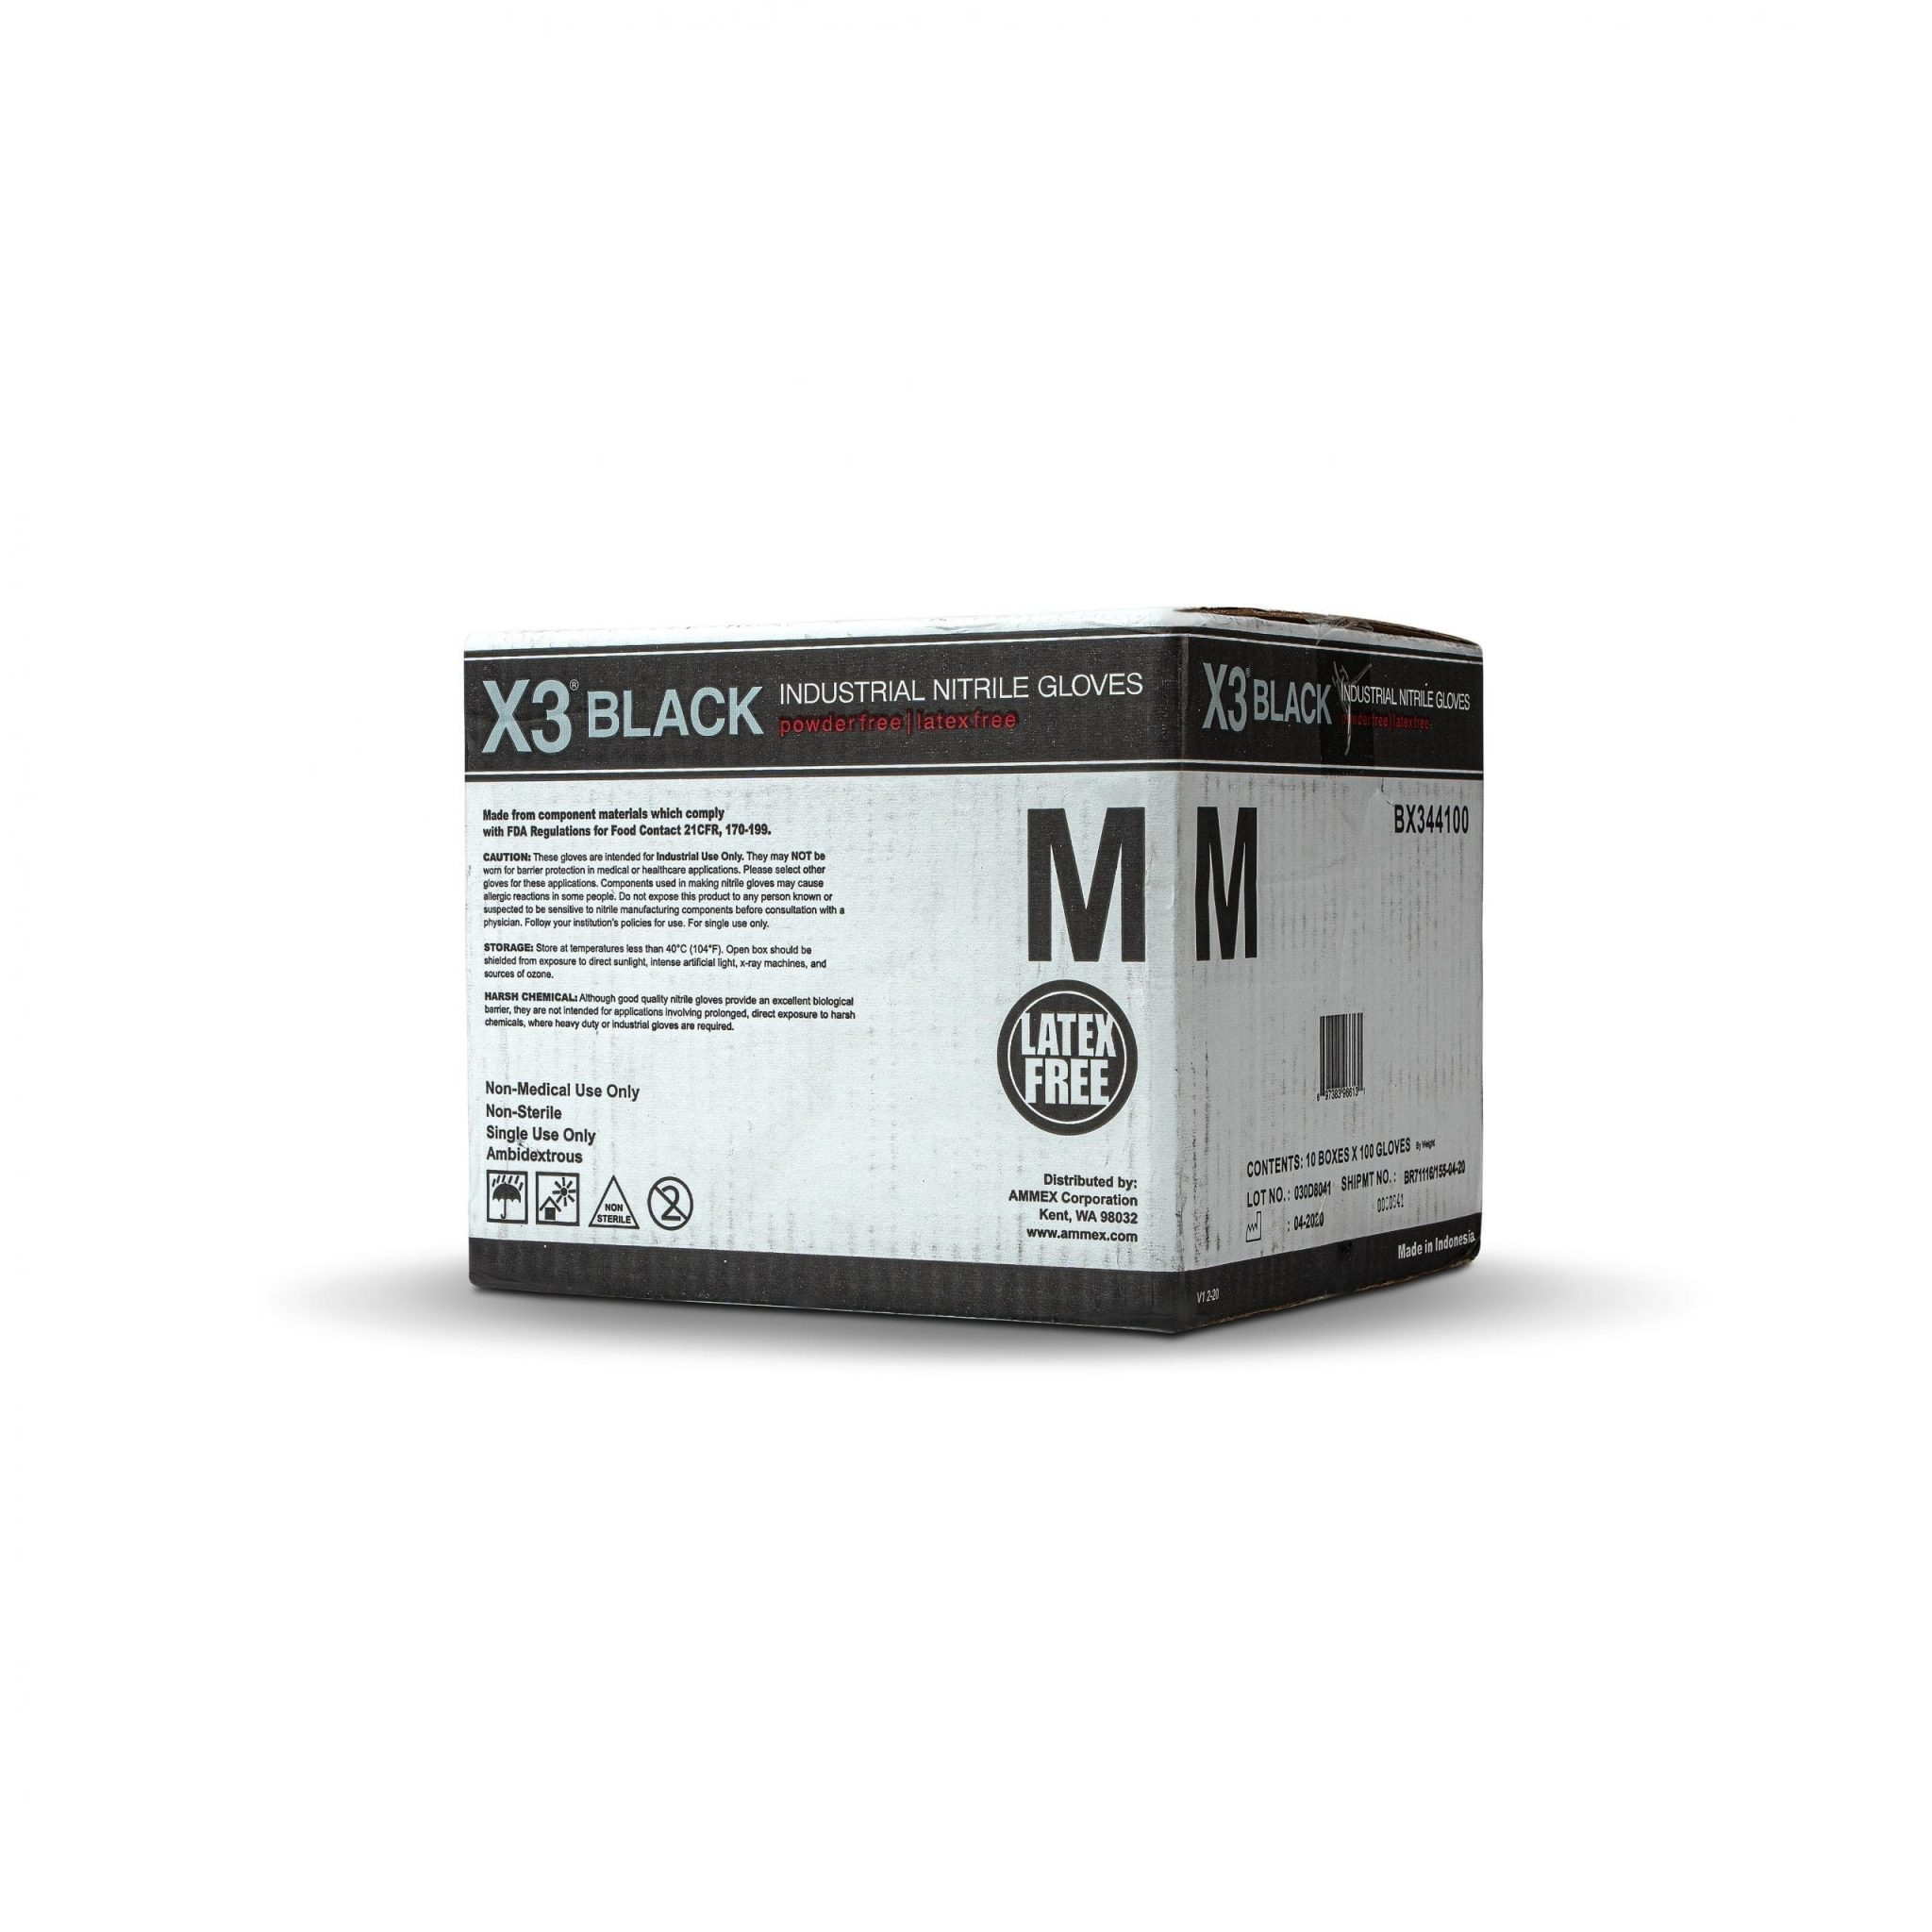 AMMEX BX3 Black Nitrile Industrial Latex Free Disposable Gloves